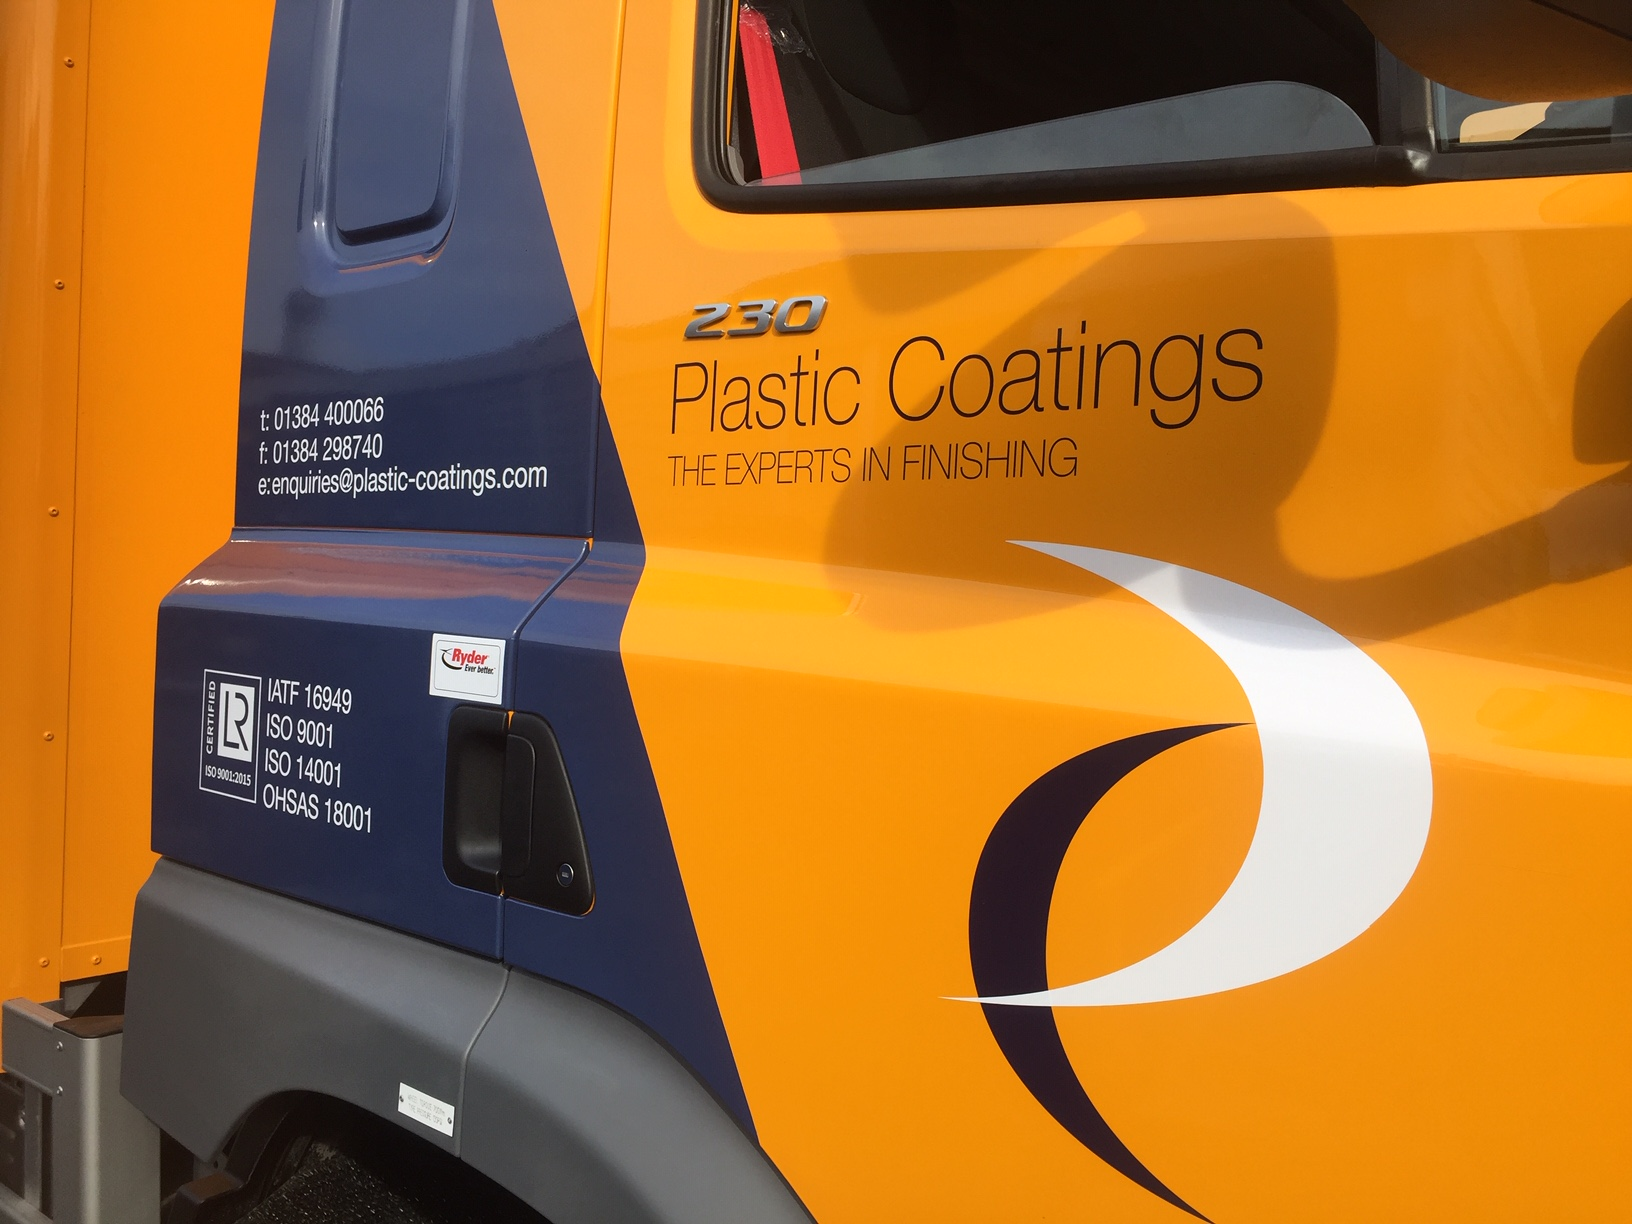 Not just Plastic Coatings... Our new fleet